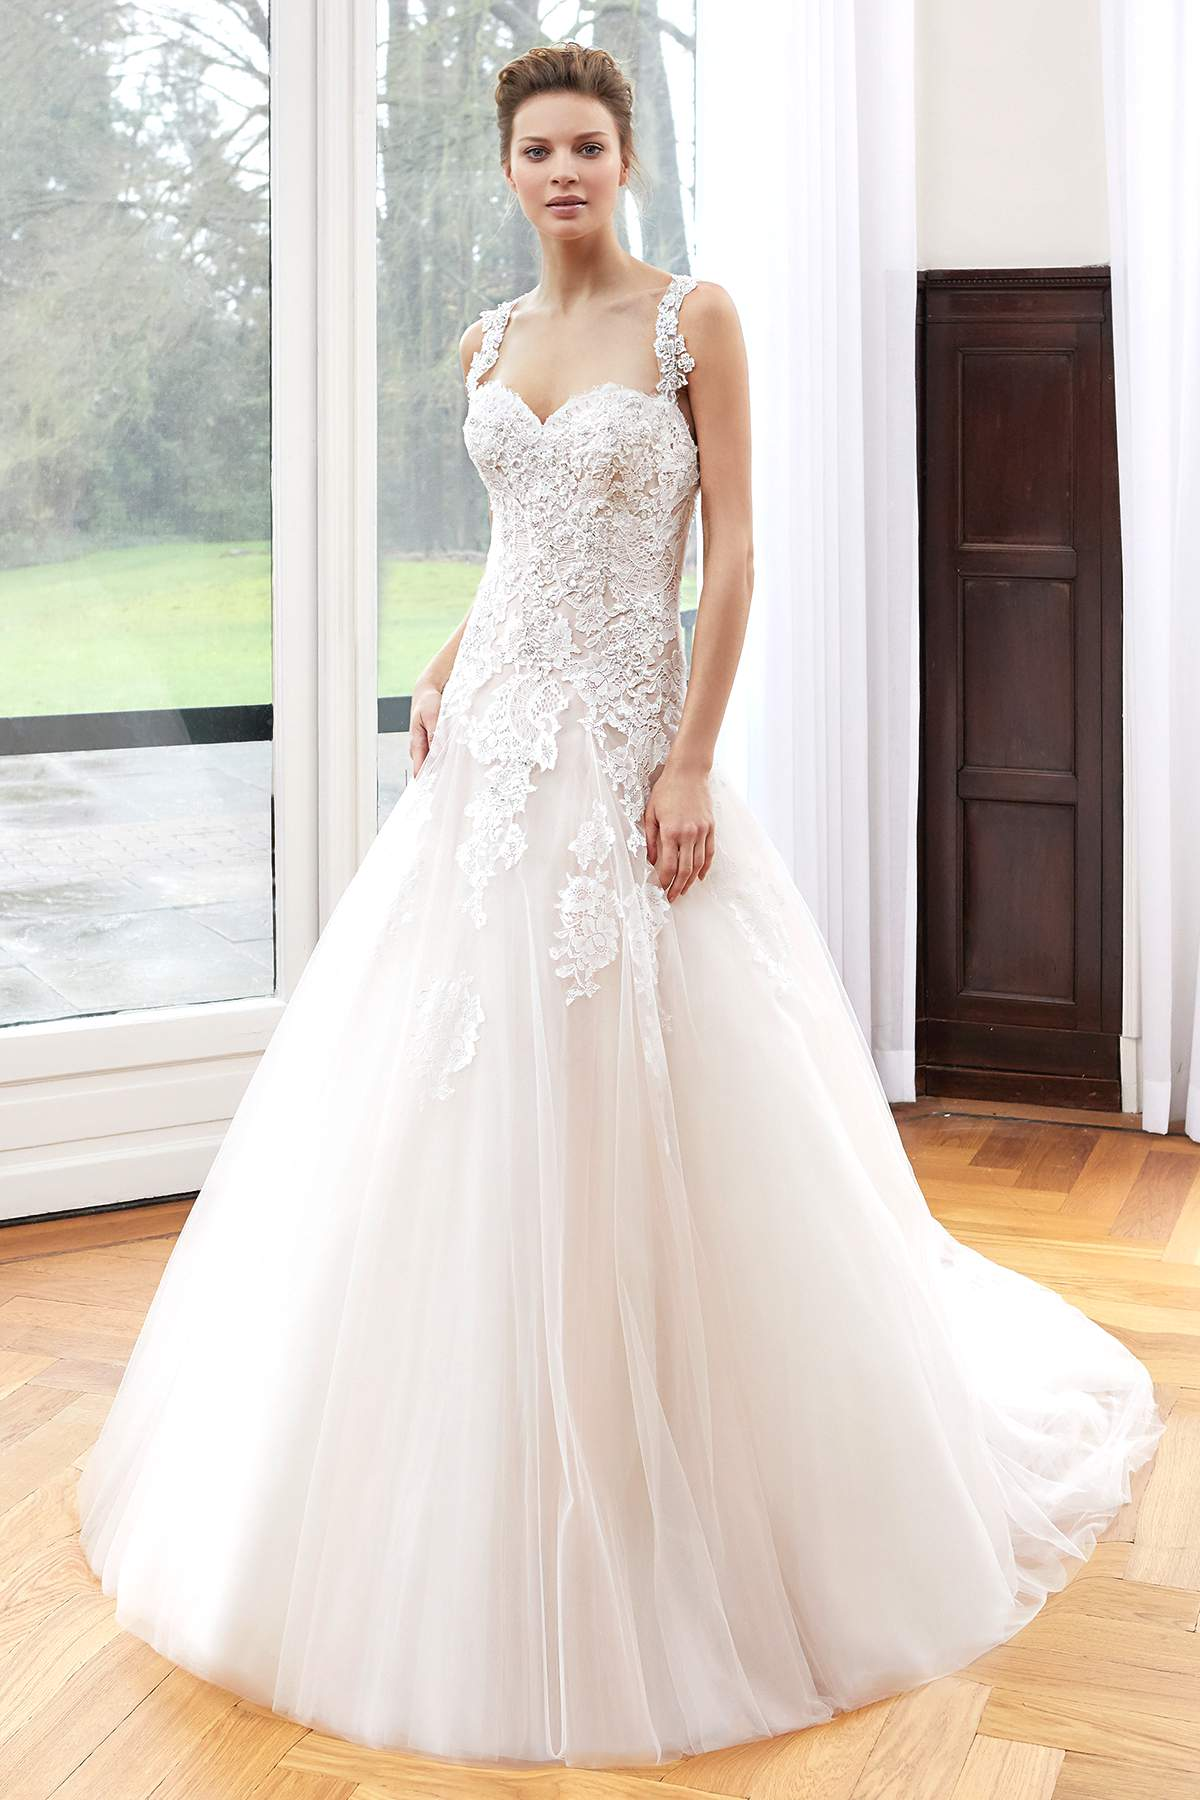 Angelina by Modeca - Find Your Dream Dress